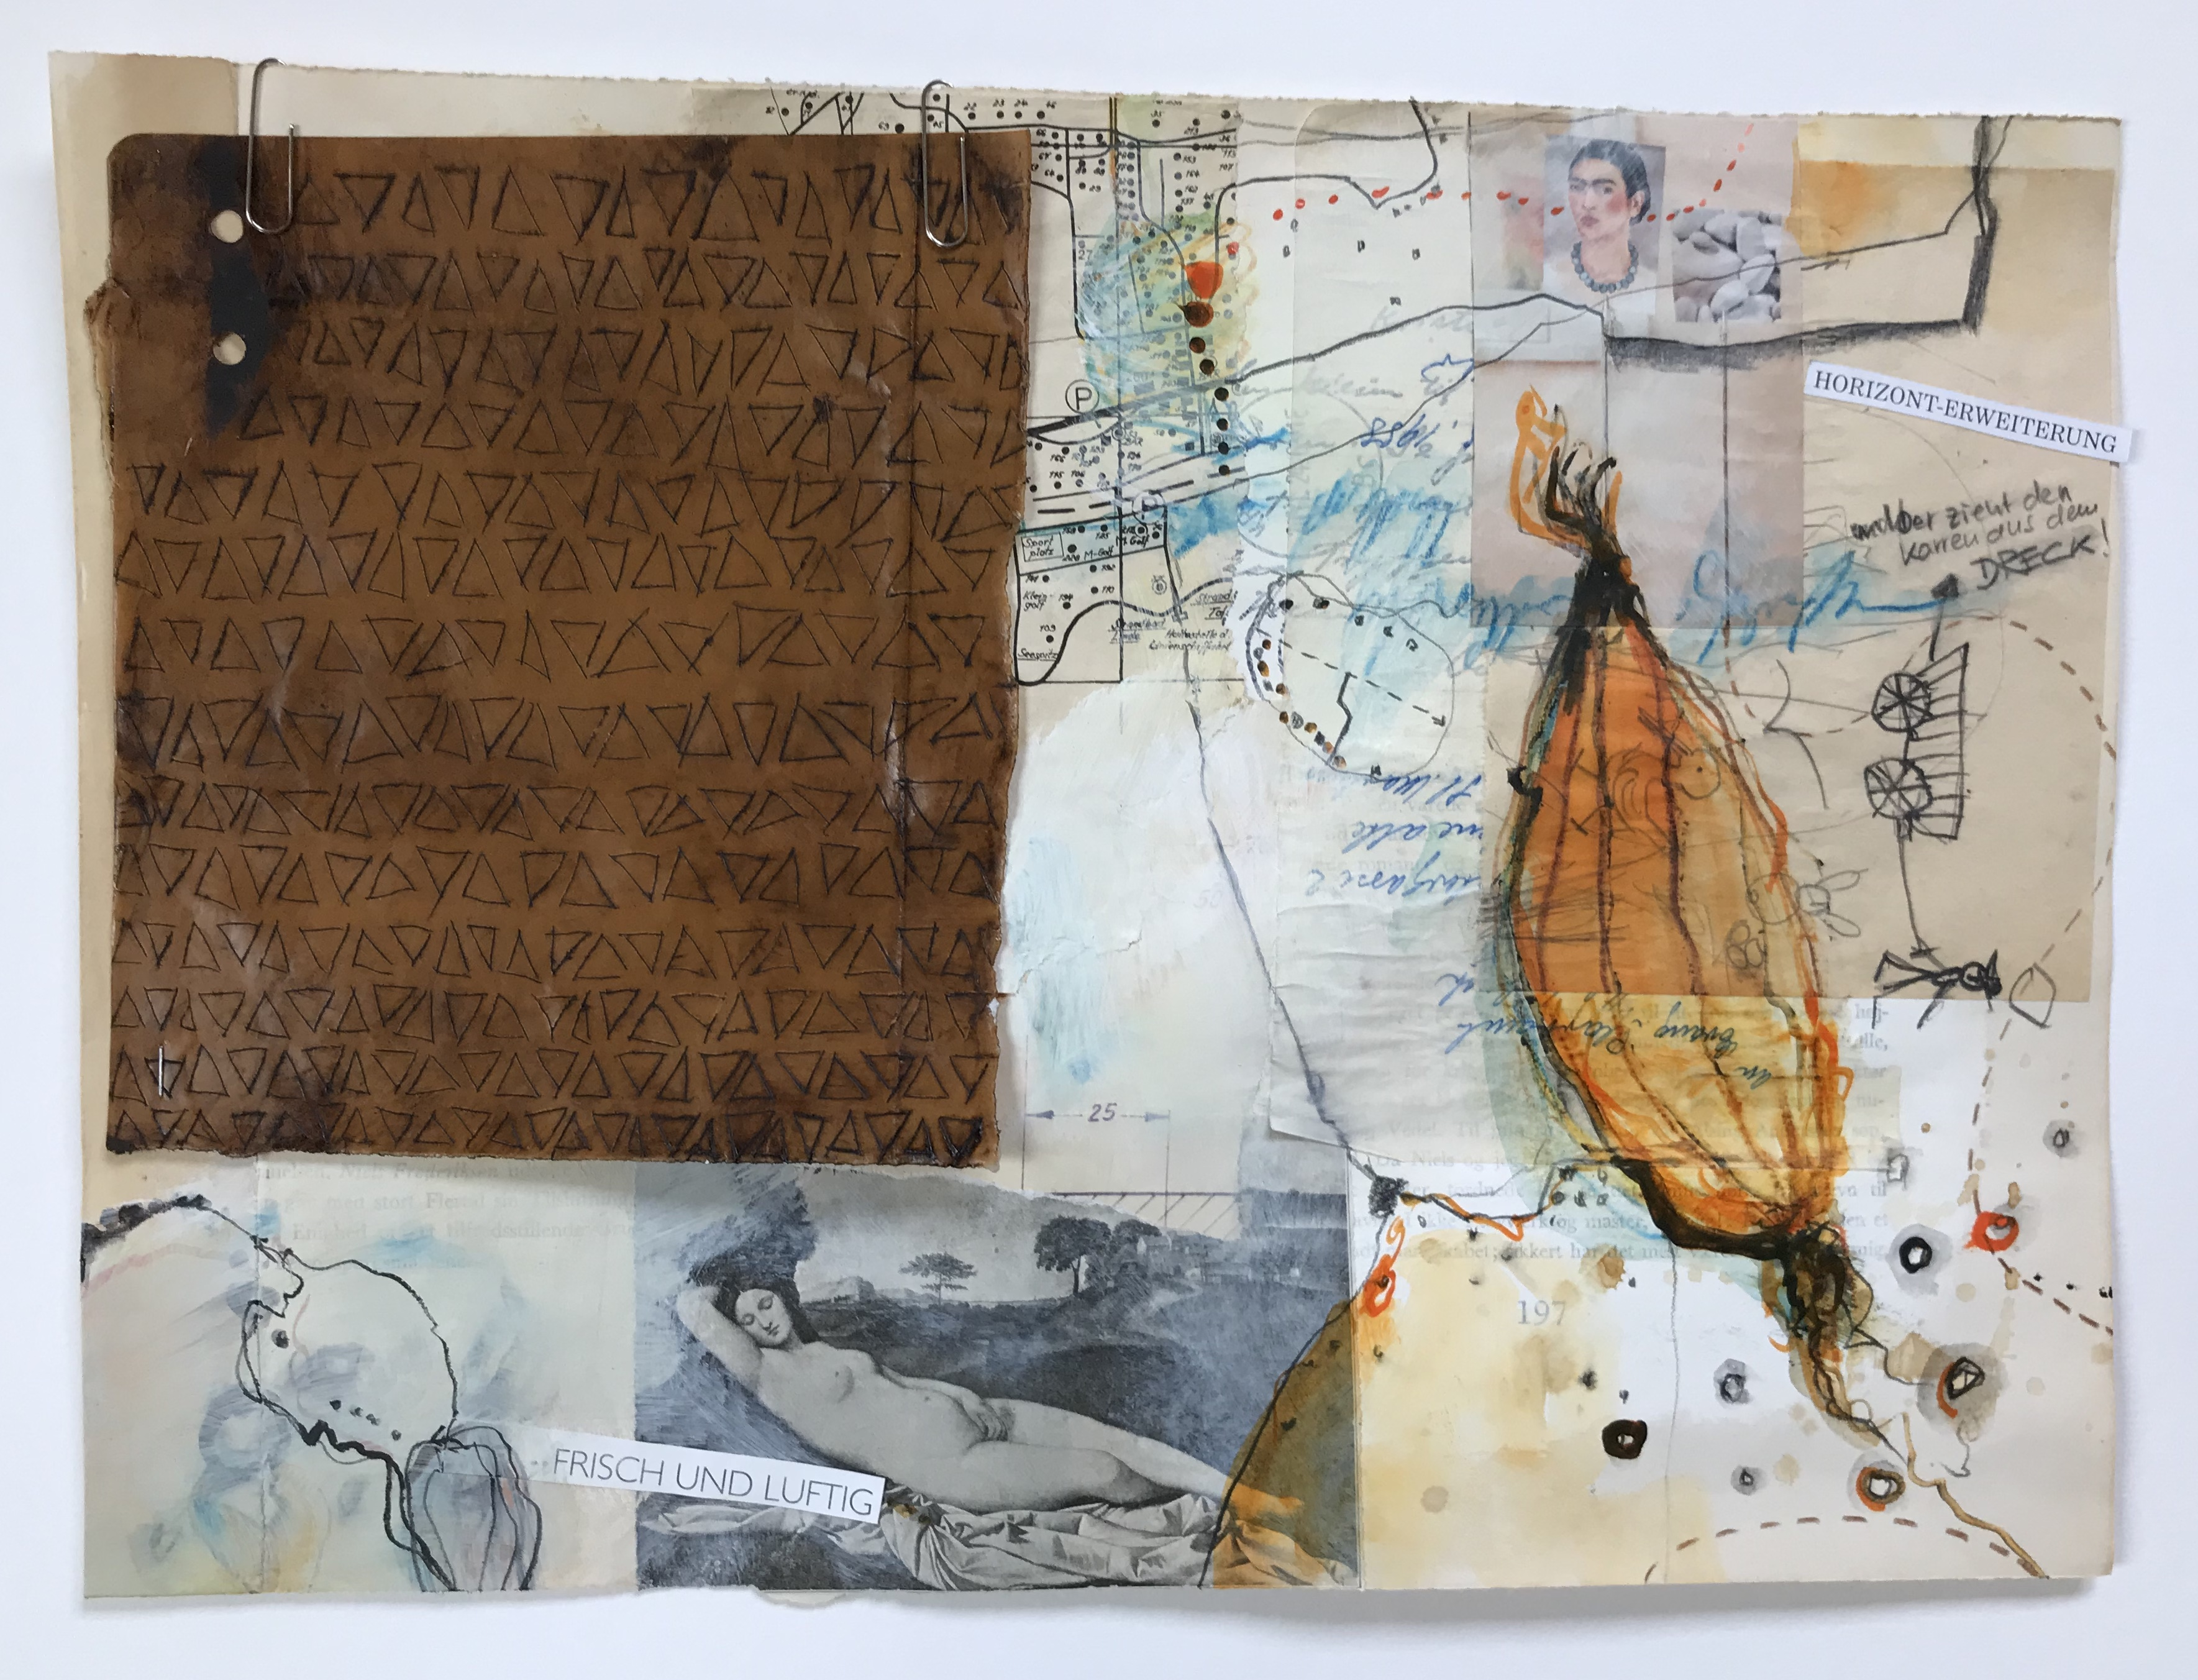 Kalender, Collage, Mixed Media